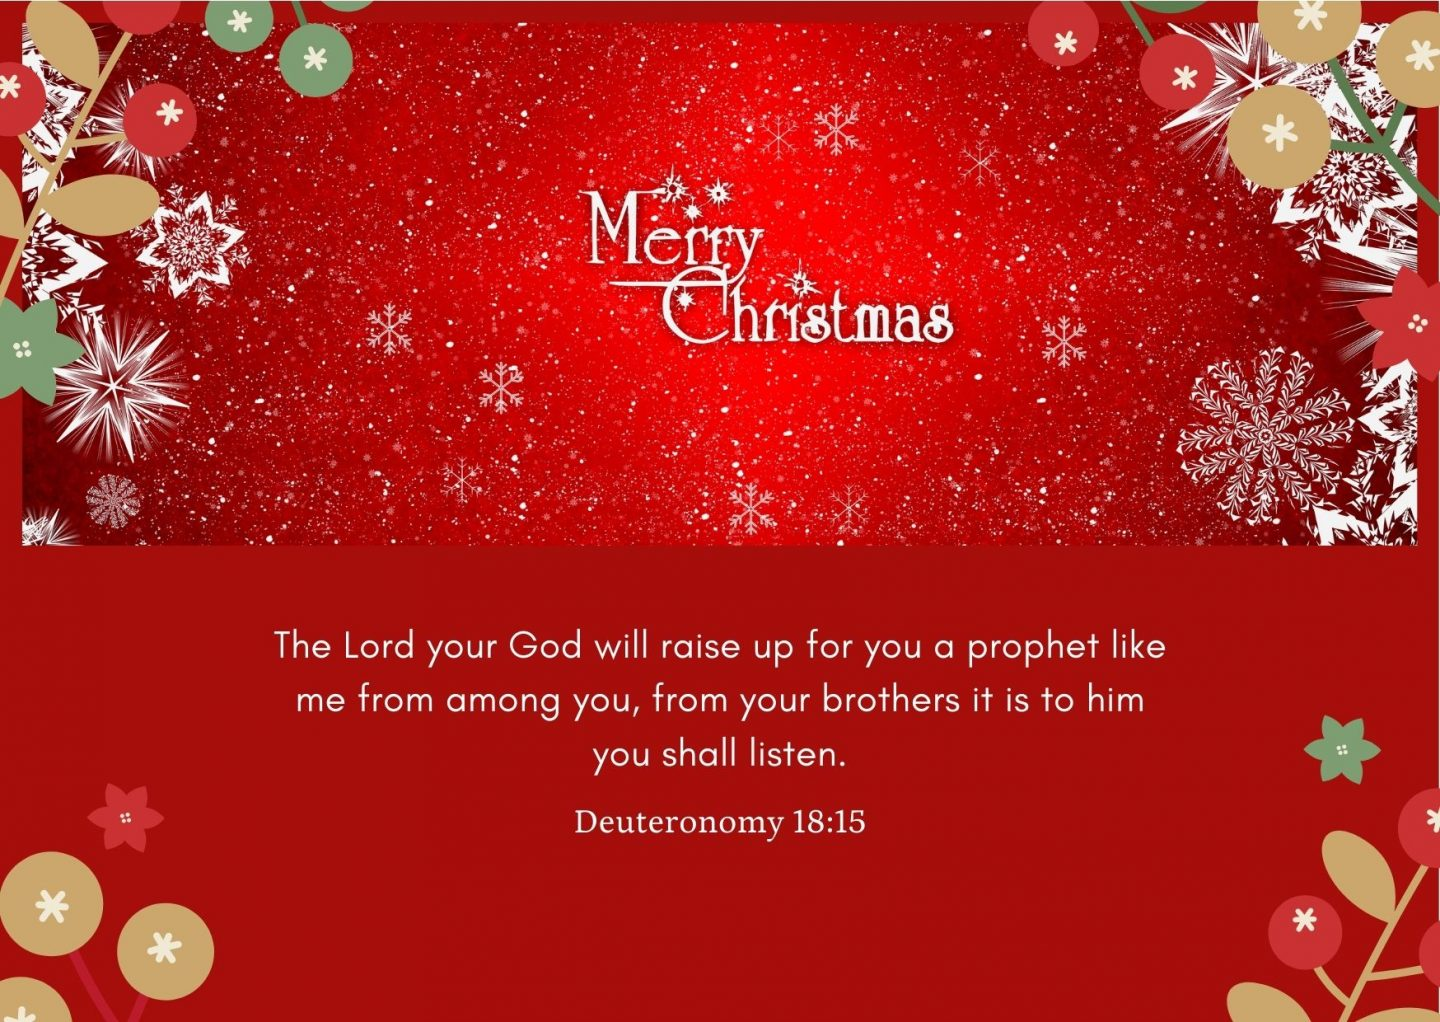 The Lord your God will raise up for you a prophet like me from among you, from your brothers it is to him you shall listen Deuteronomy 18:15